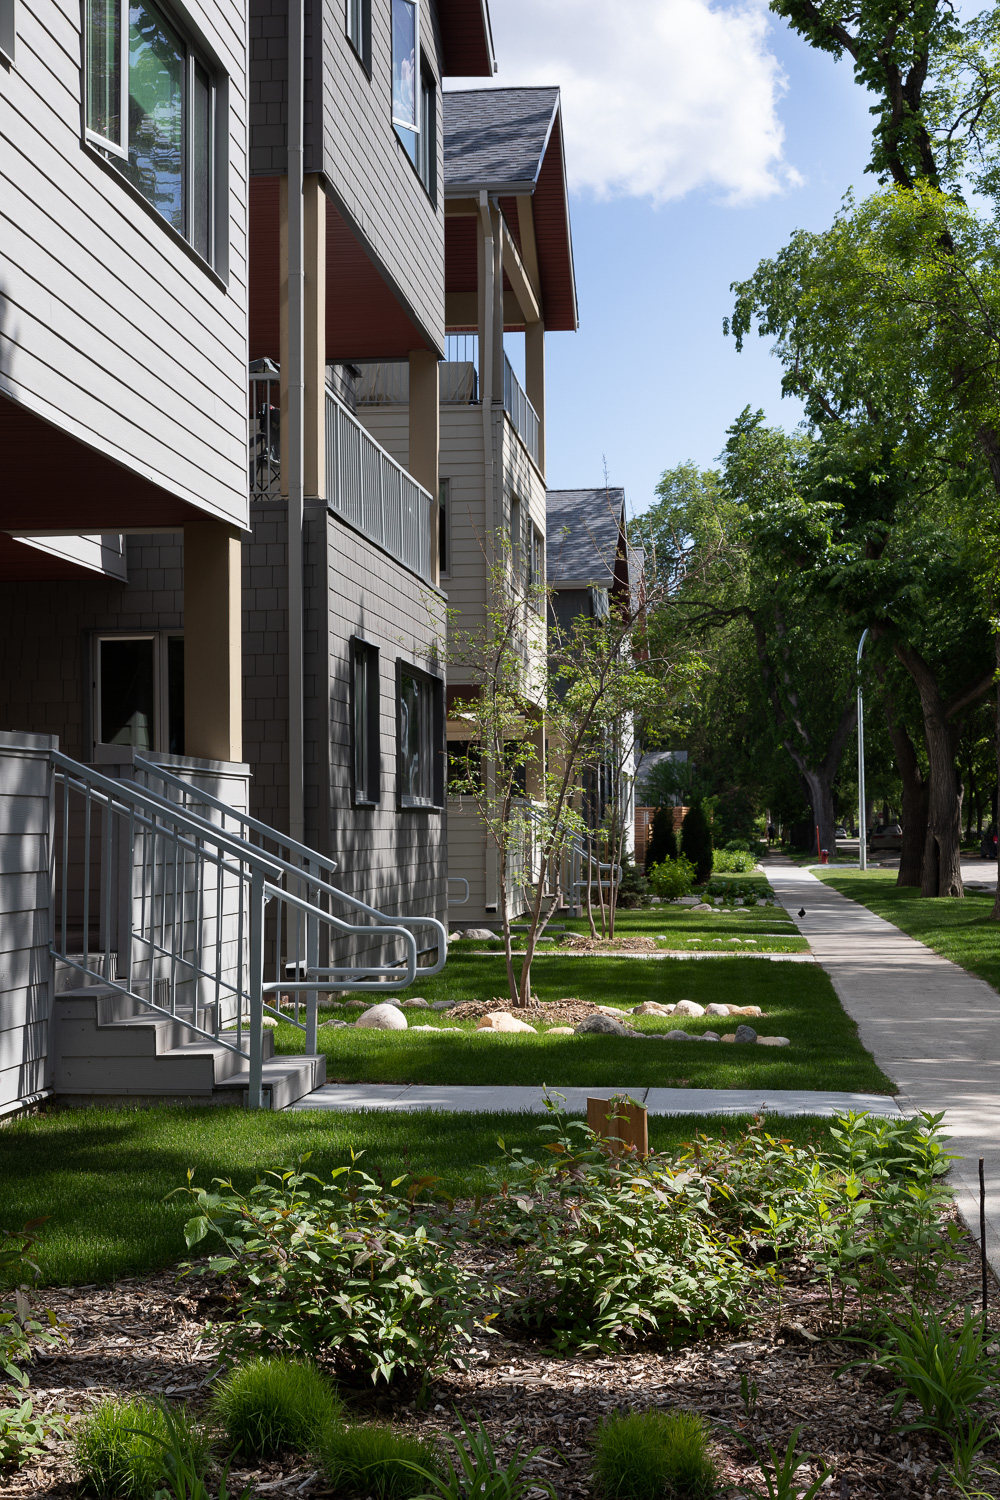 Old-Grace-Housing-Coop-streetscape-yards.jpg